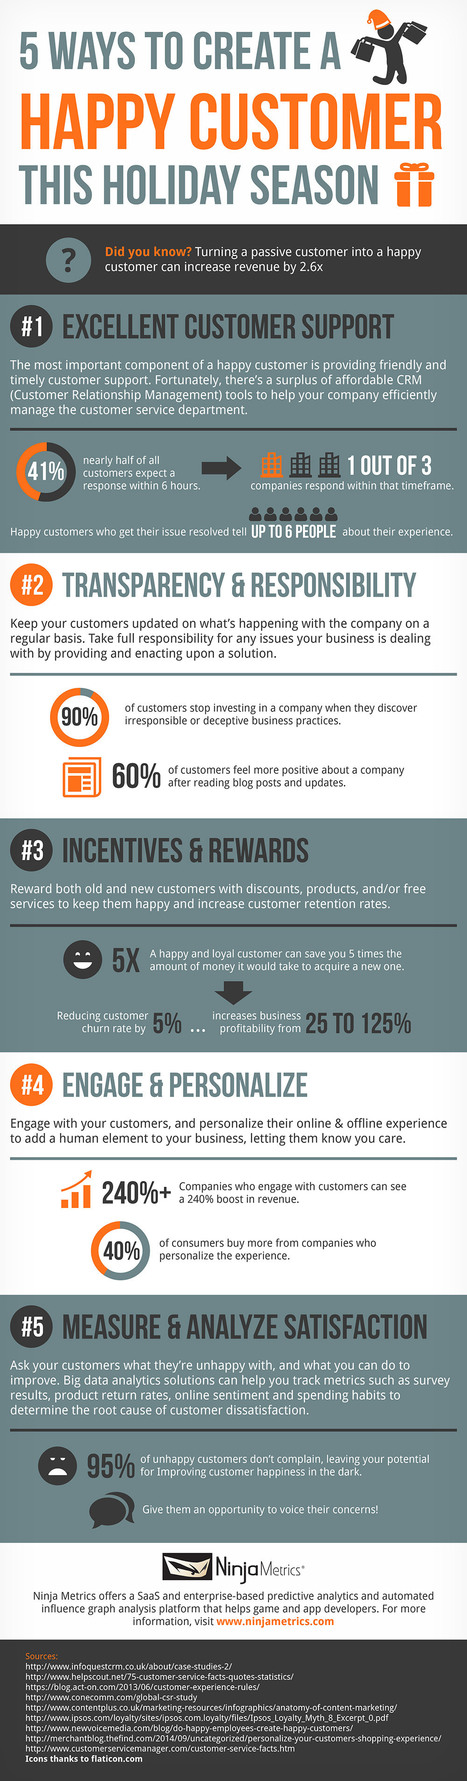 If You Want Happy Customers, Do These 5 Things #Infographic   MarketingHits   Scoop.it